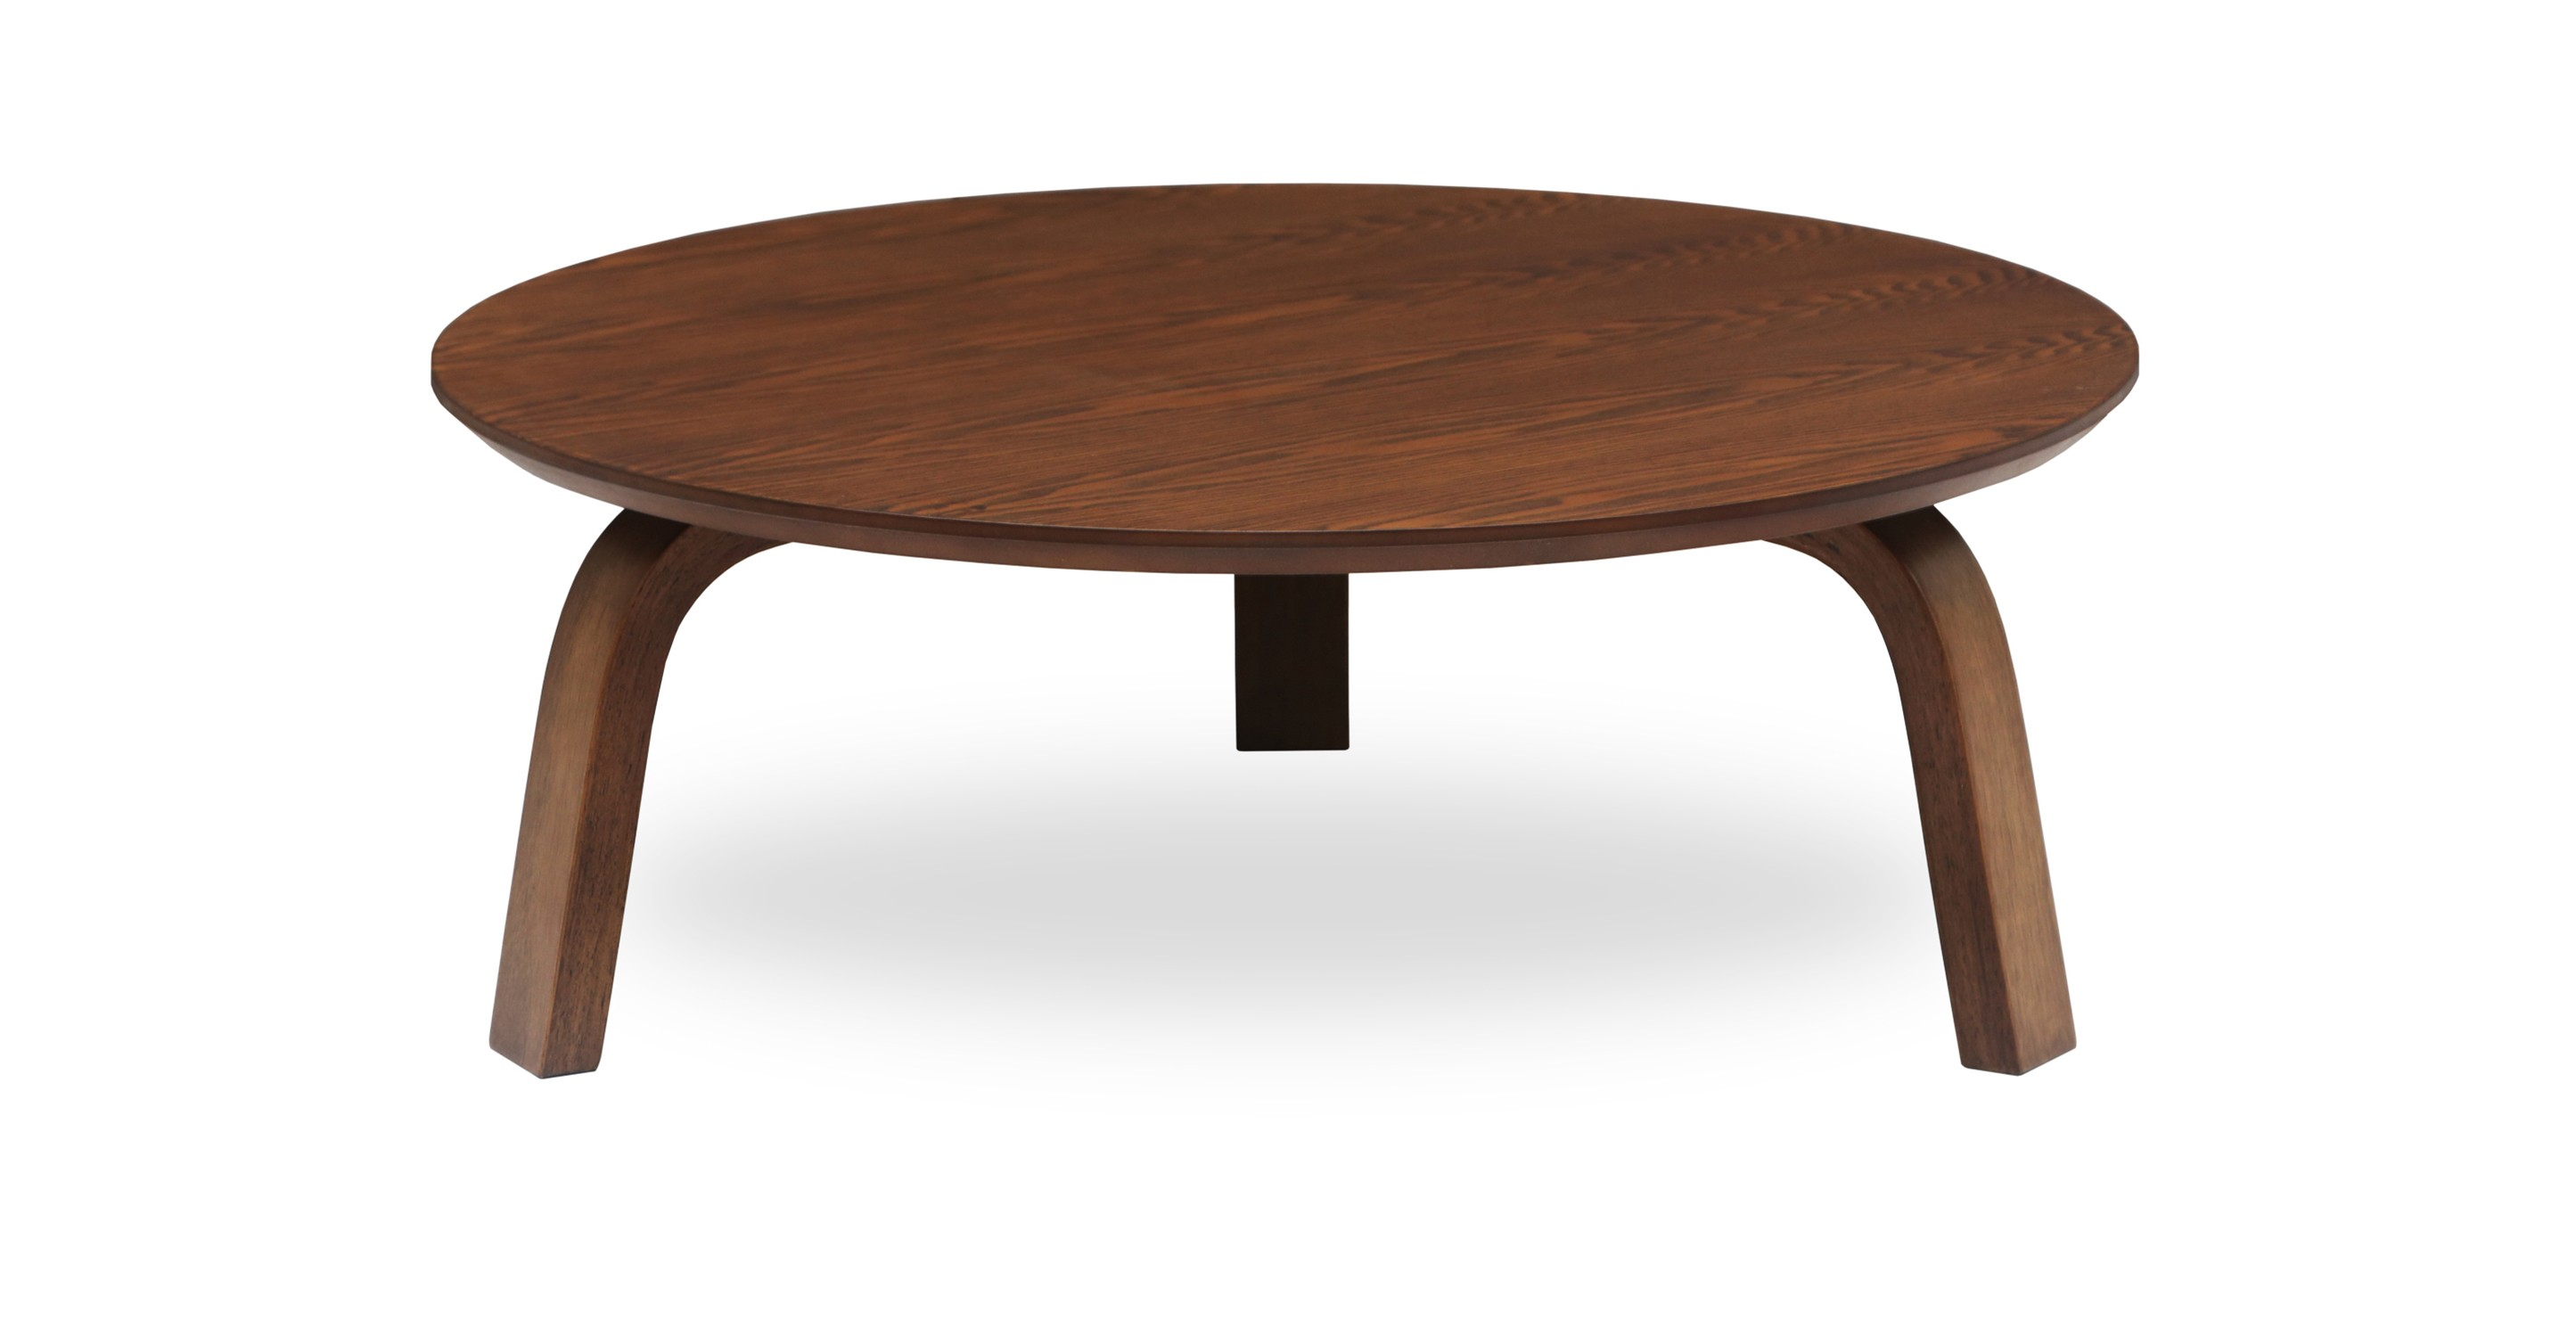 Nes Cocoa Wood Round Coffee Table   Coffee Tables   Article   Modern   Mid Century and Scandinavian Furniture. Nes Cocoa Wood Round Coffee Table   Coffee Tables   Article